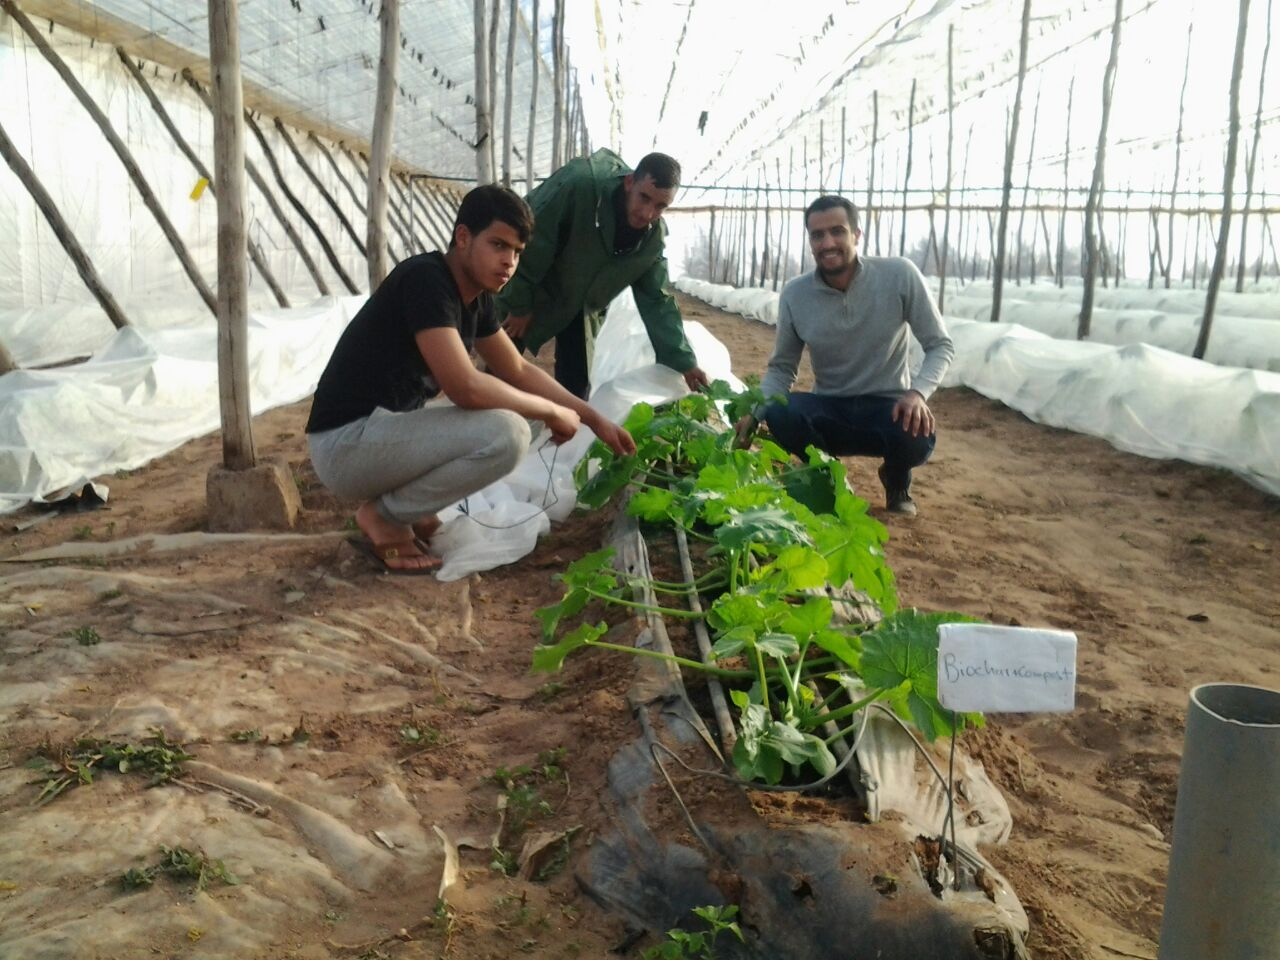 One Moroccan entrepreneur is changing the way farmers look at organic waste |The Switchers